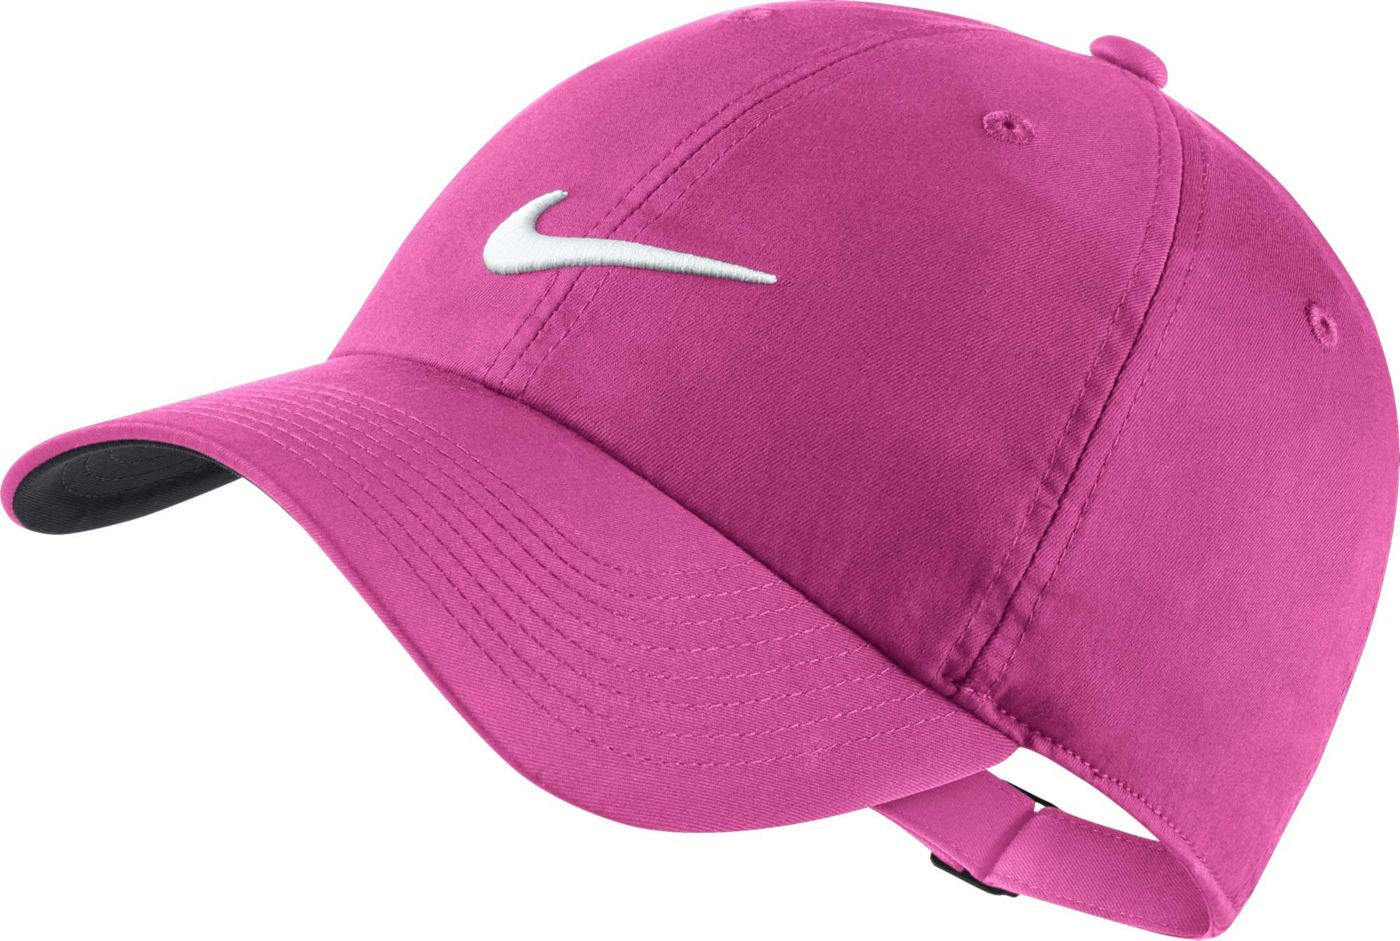 Nike Men's Heritage86 Statement Golf Hat